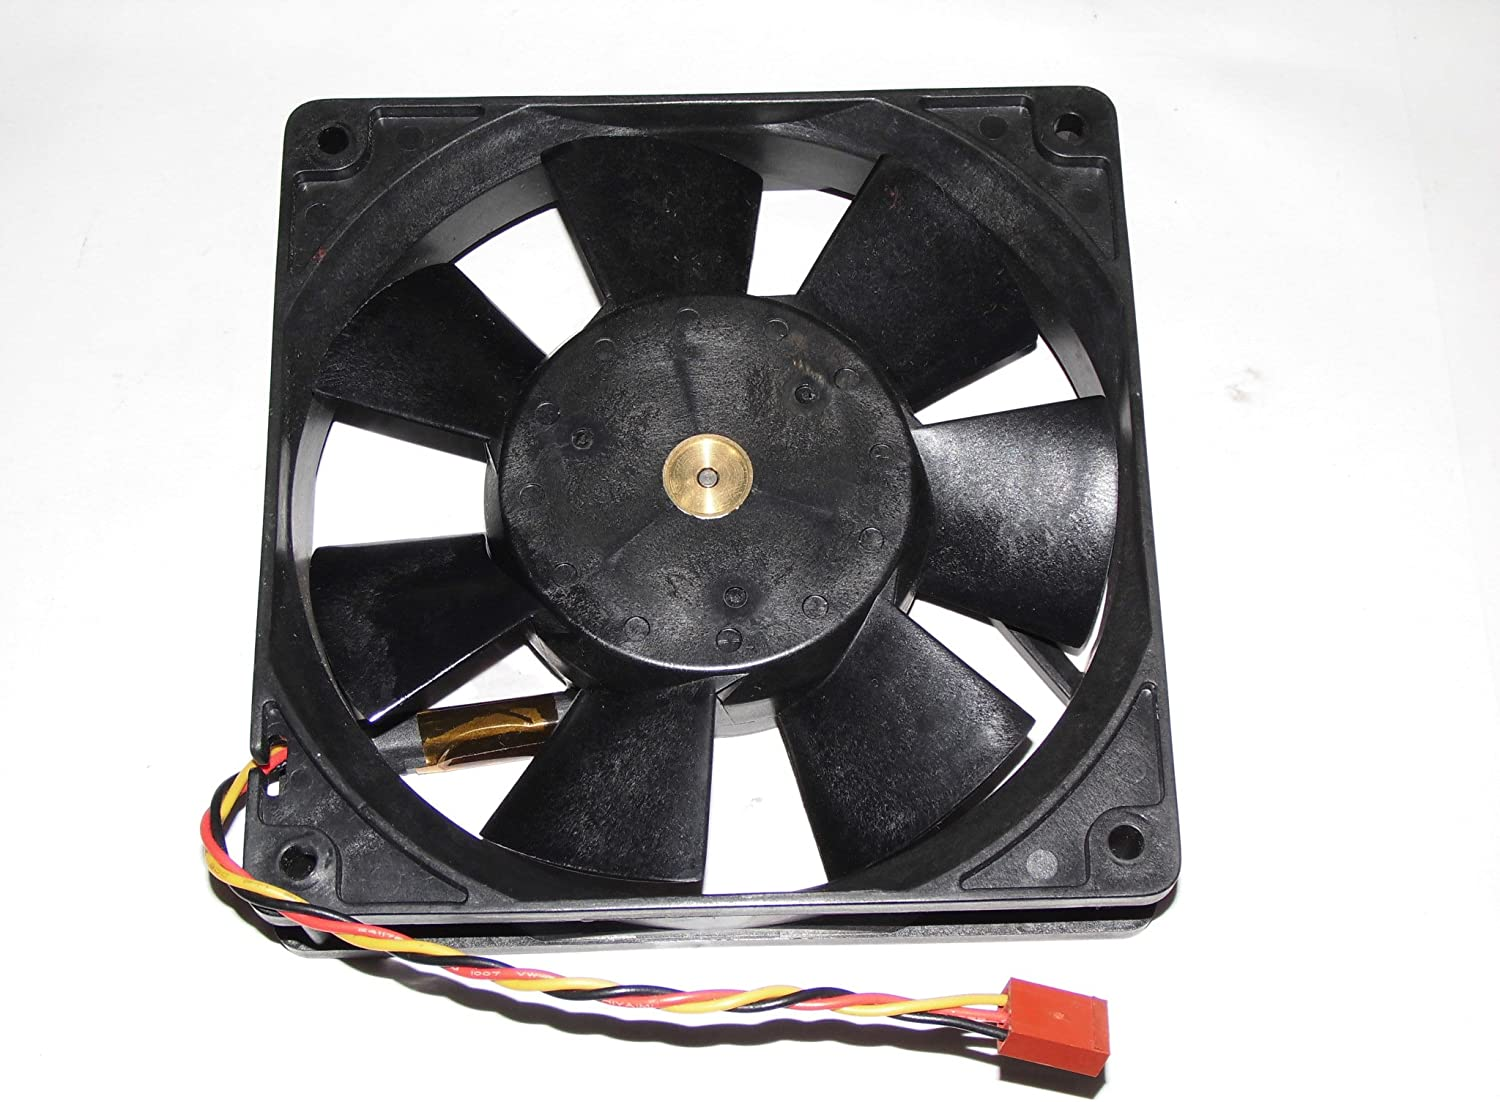 SANYO 12025 109P1212H401 12V 0.45A 3Wire Cooling Fan